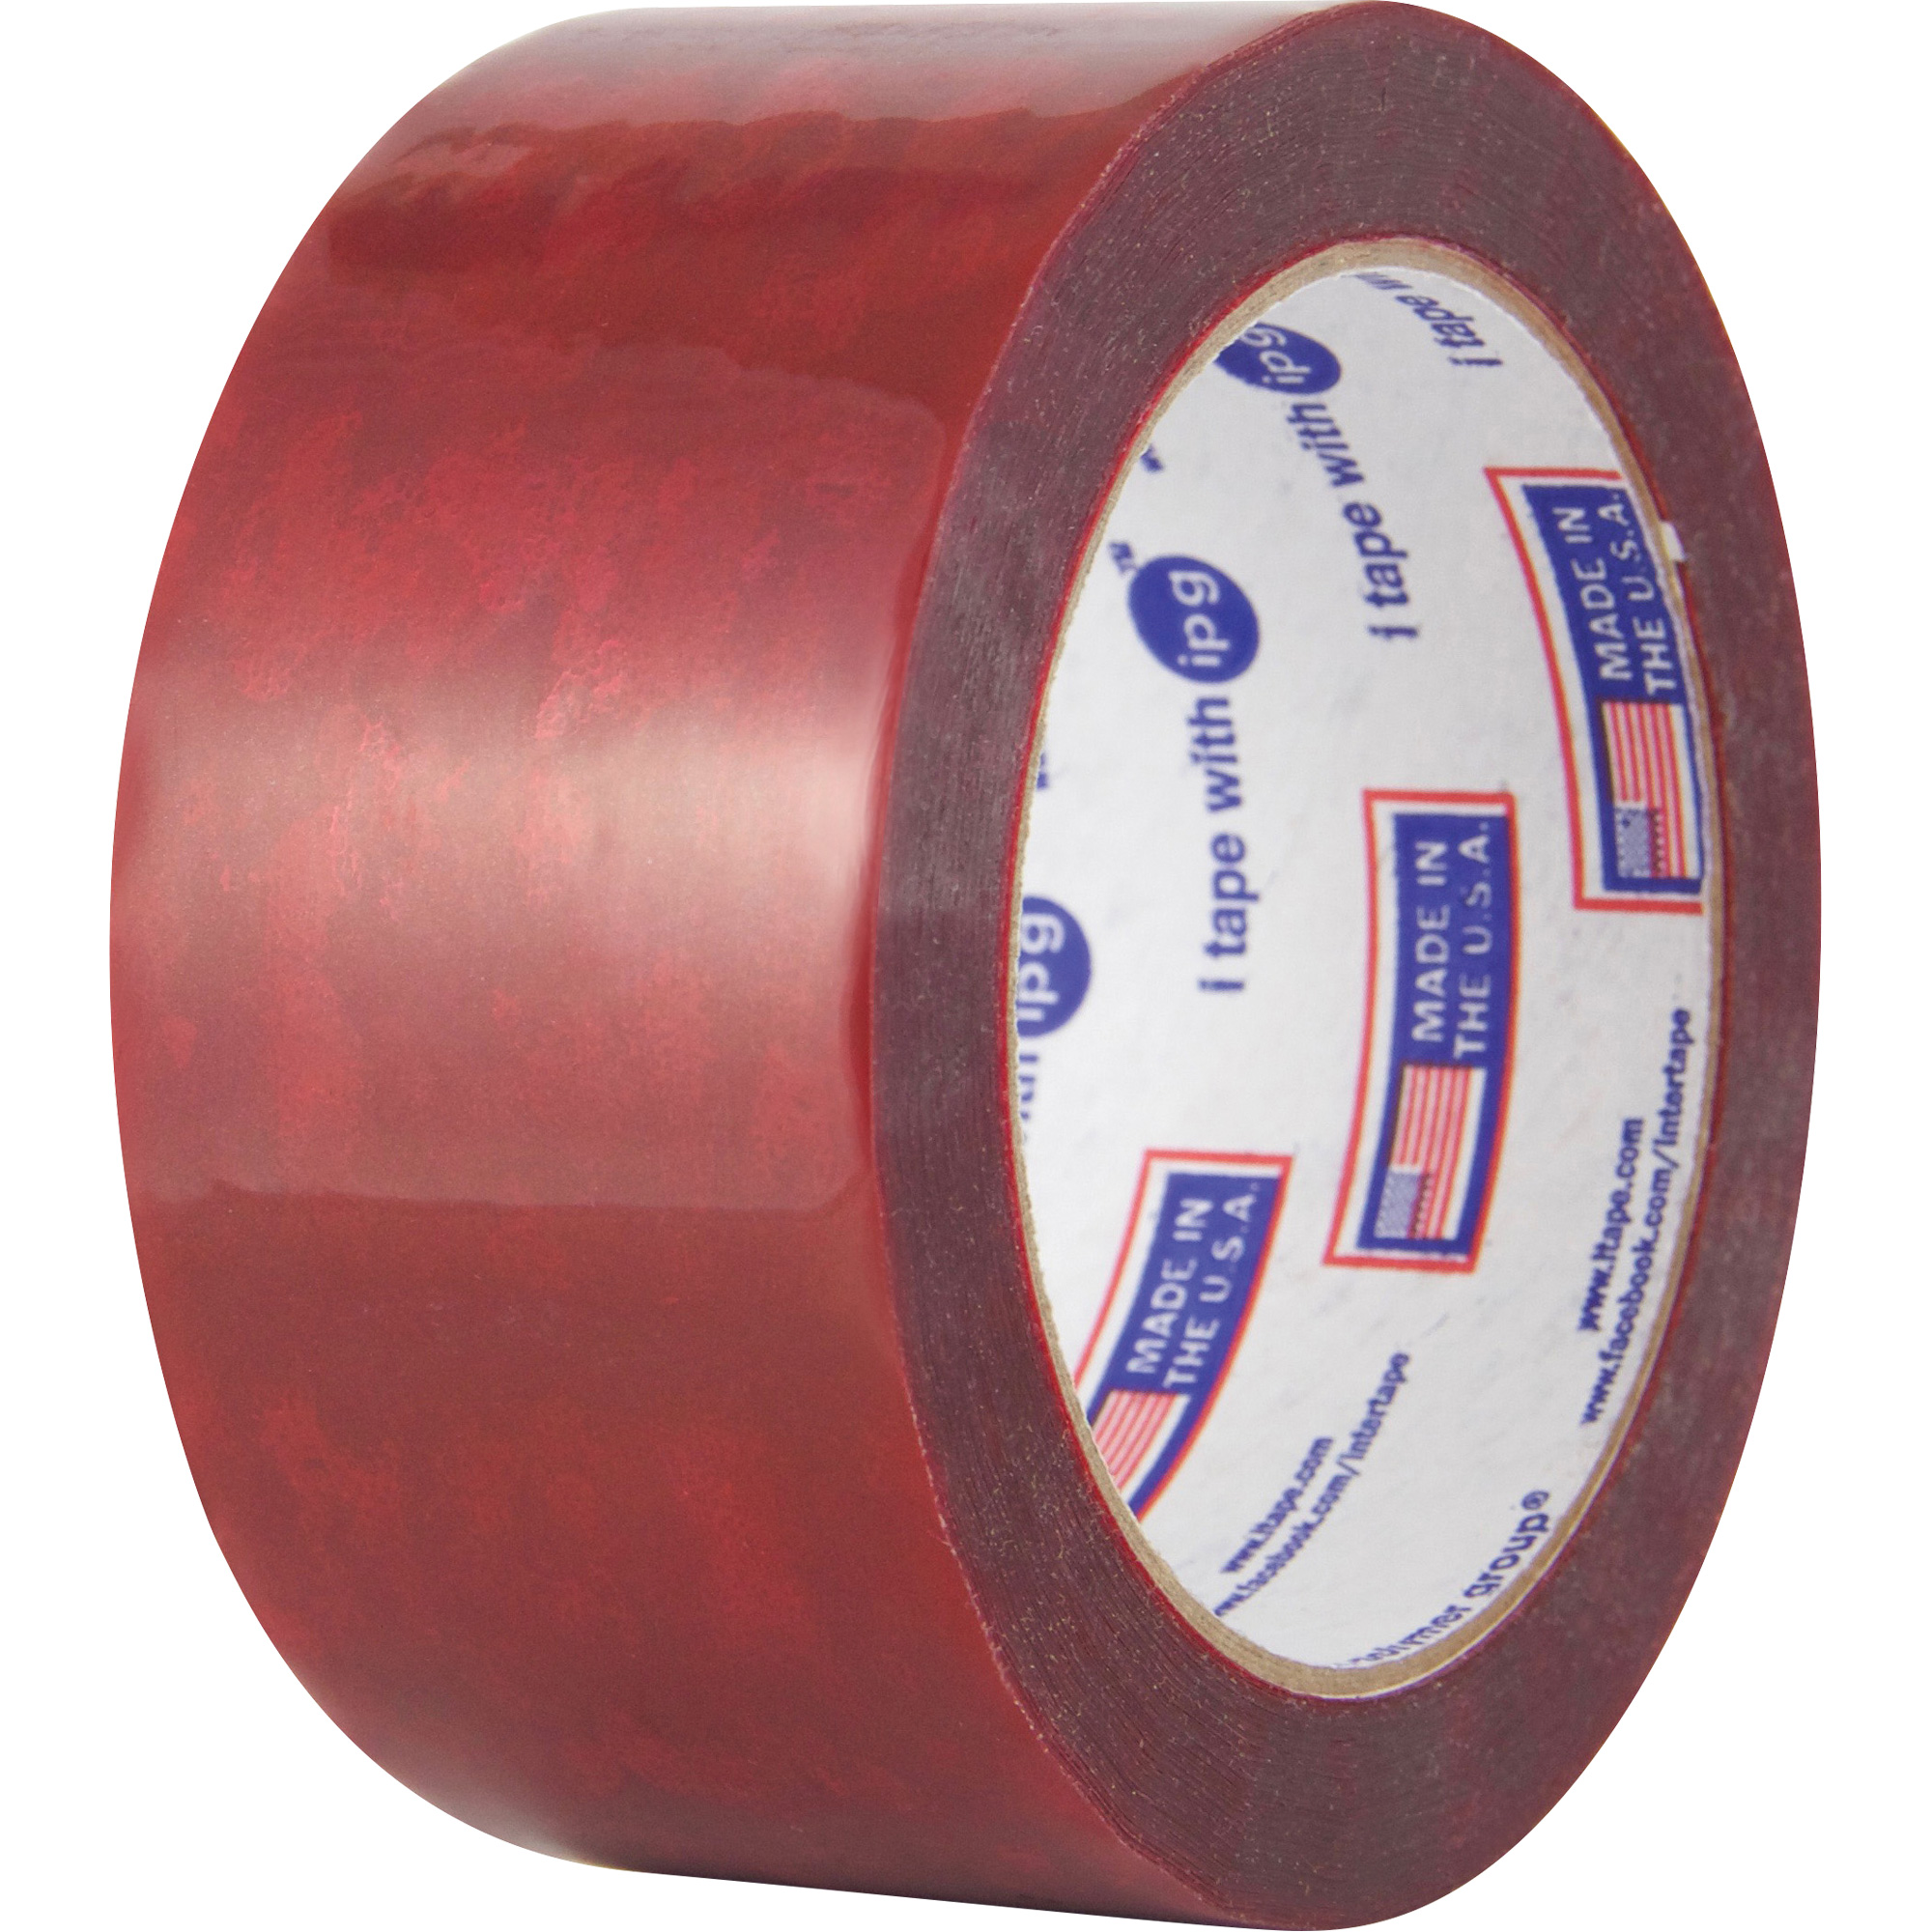 Contractor's Sheathing Tape